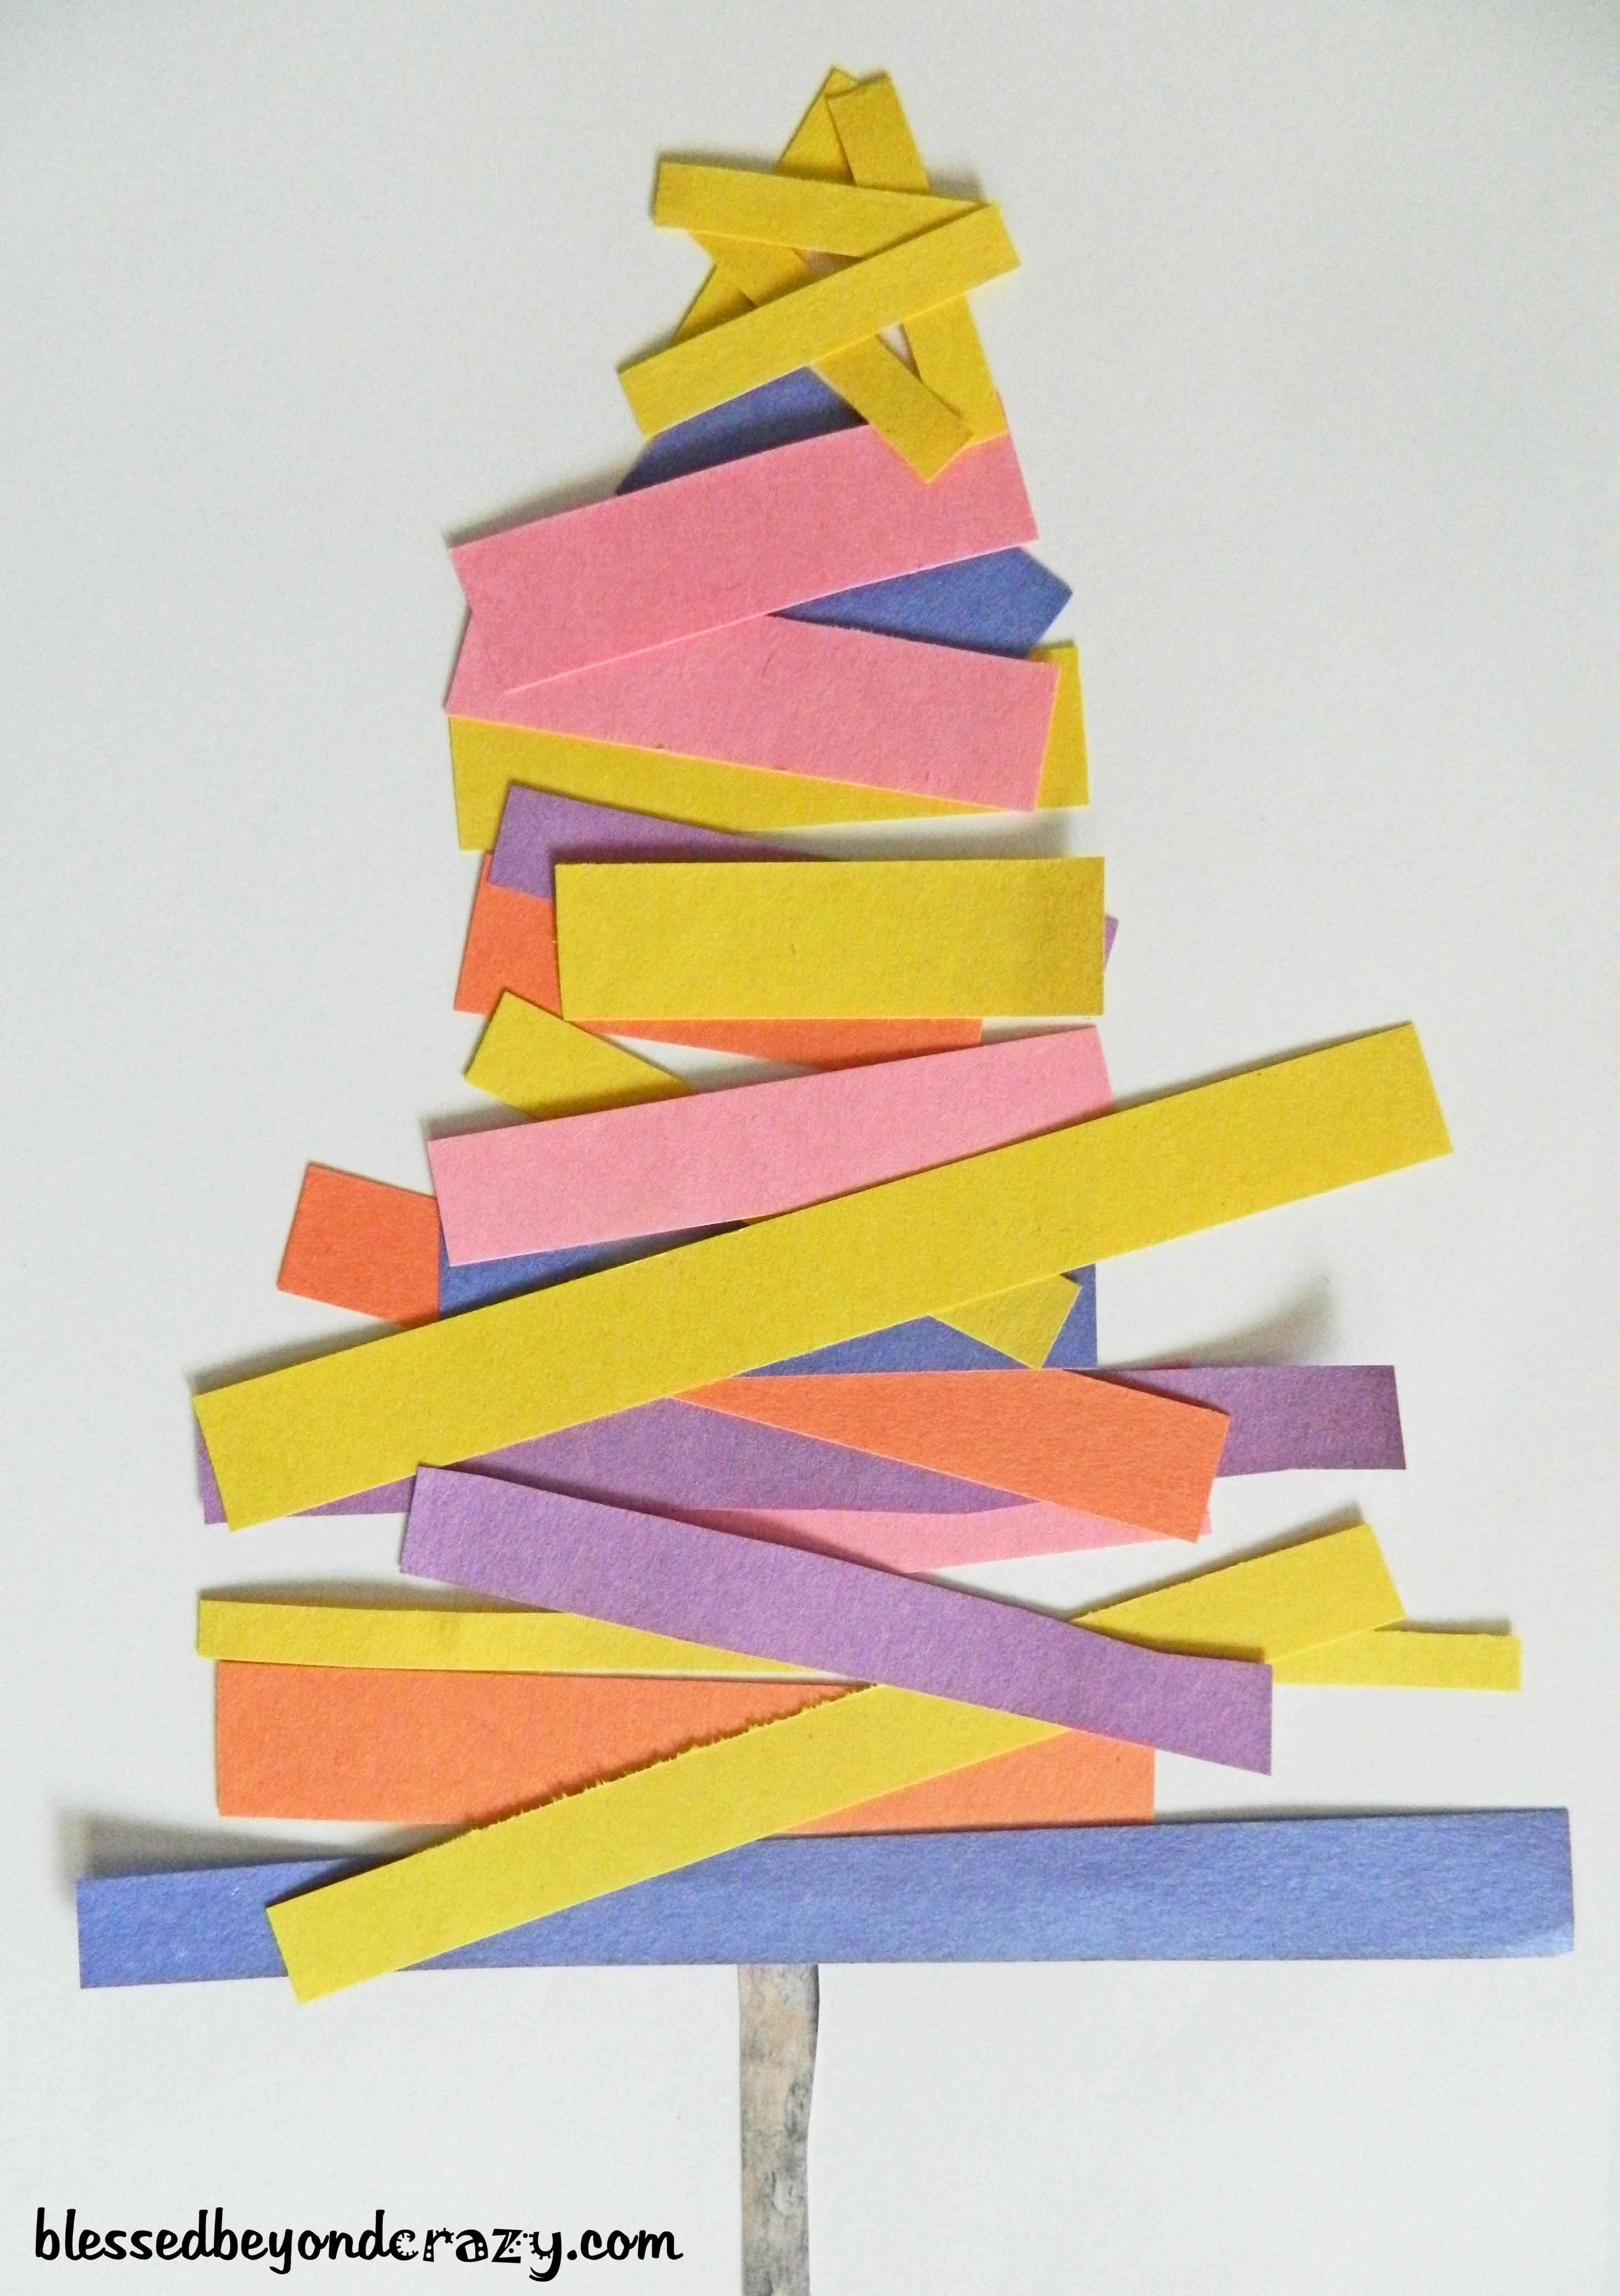 supplies construction paper - Christmas Crafts With Construction Paper